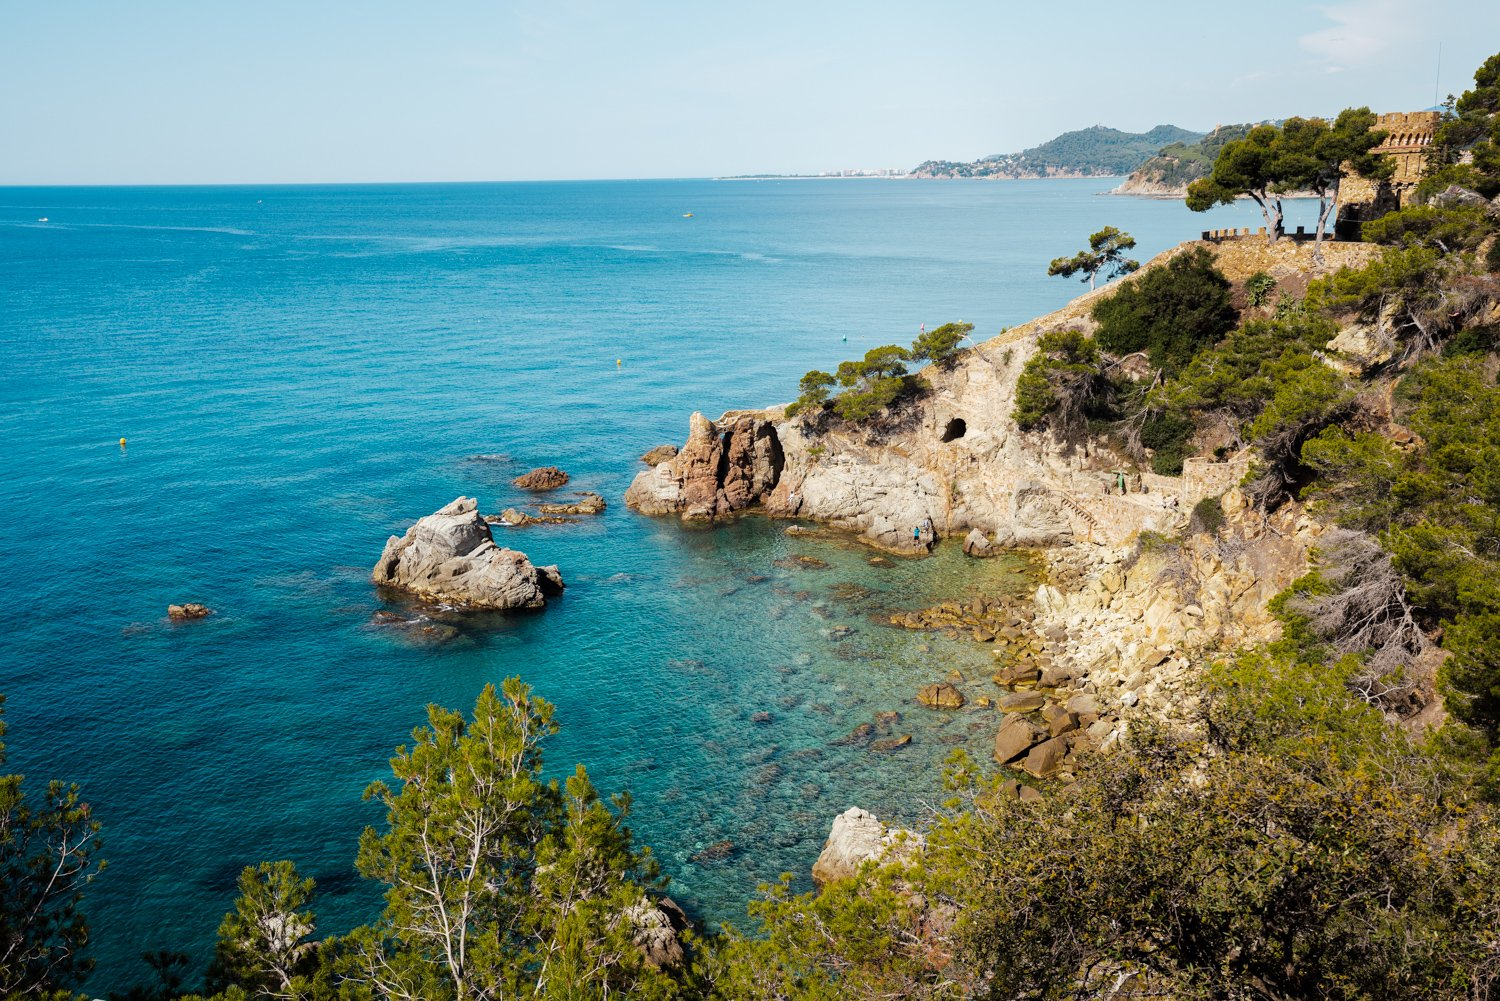 Green trees and bright blue water along Costa Brava coast